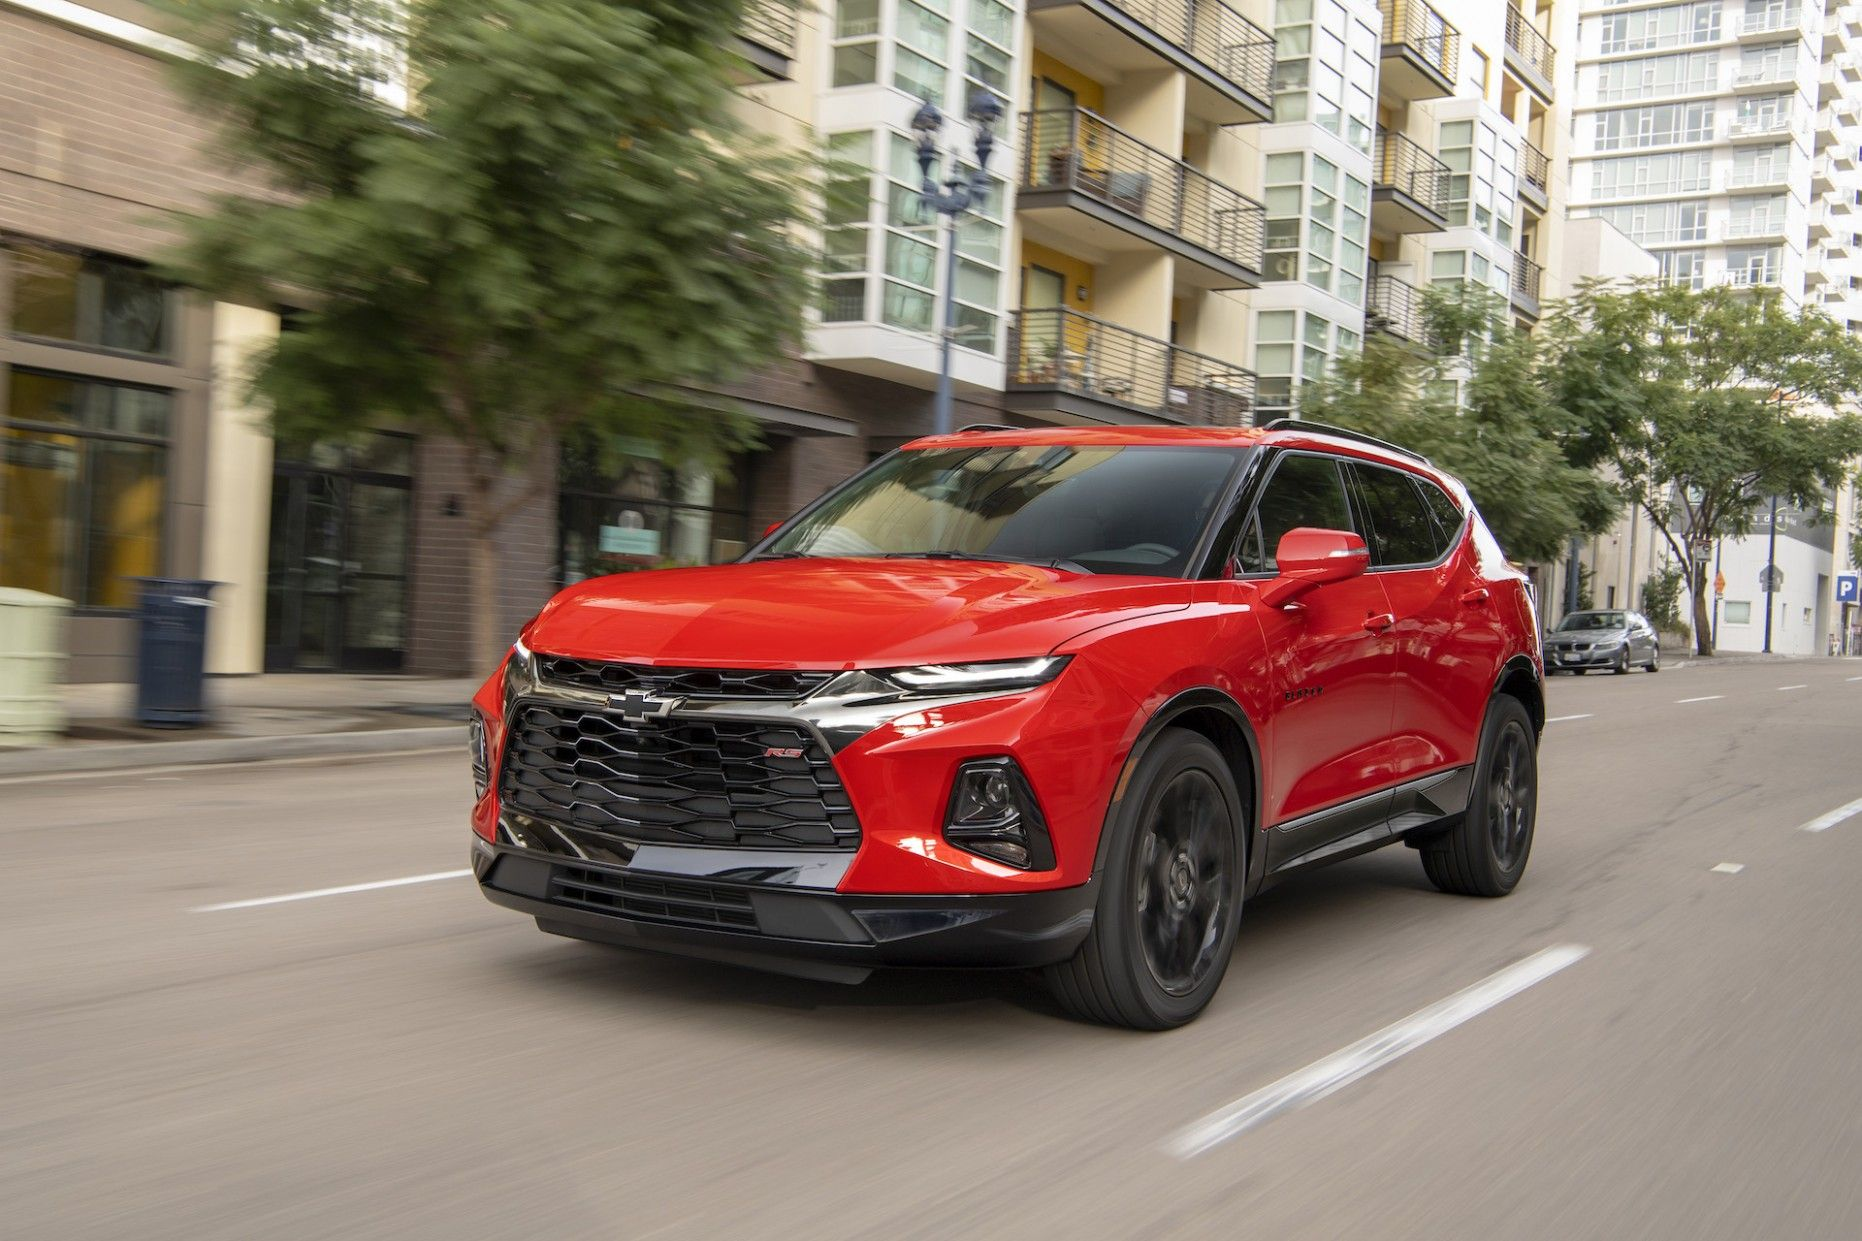 Chevrolet Blazer 2020 Price Philippines Chevrolet Trailblazer Chevrolet Blazer Chevrolet